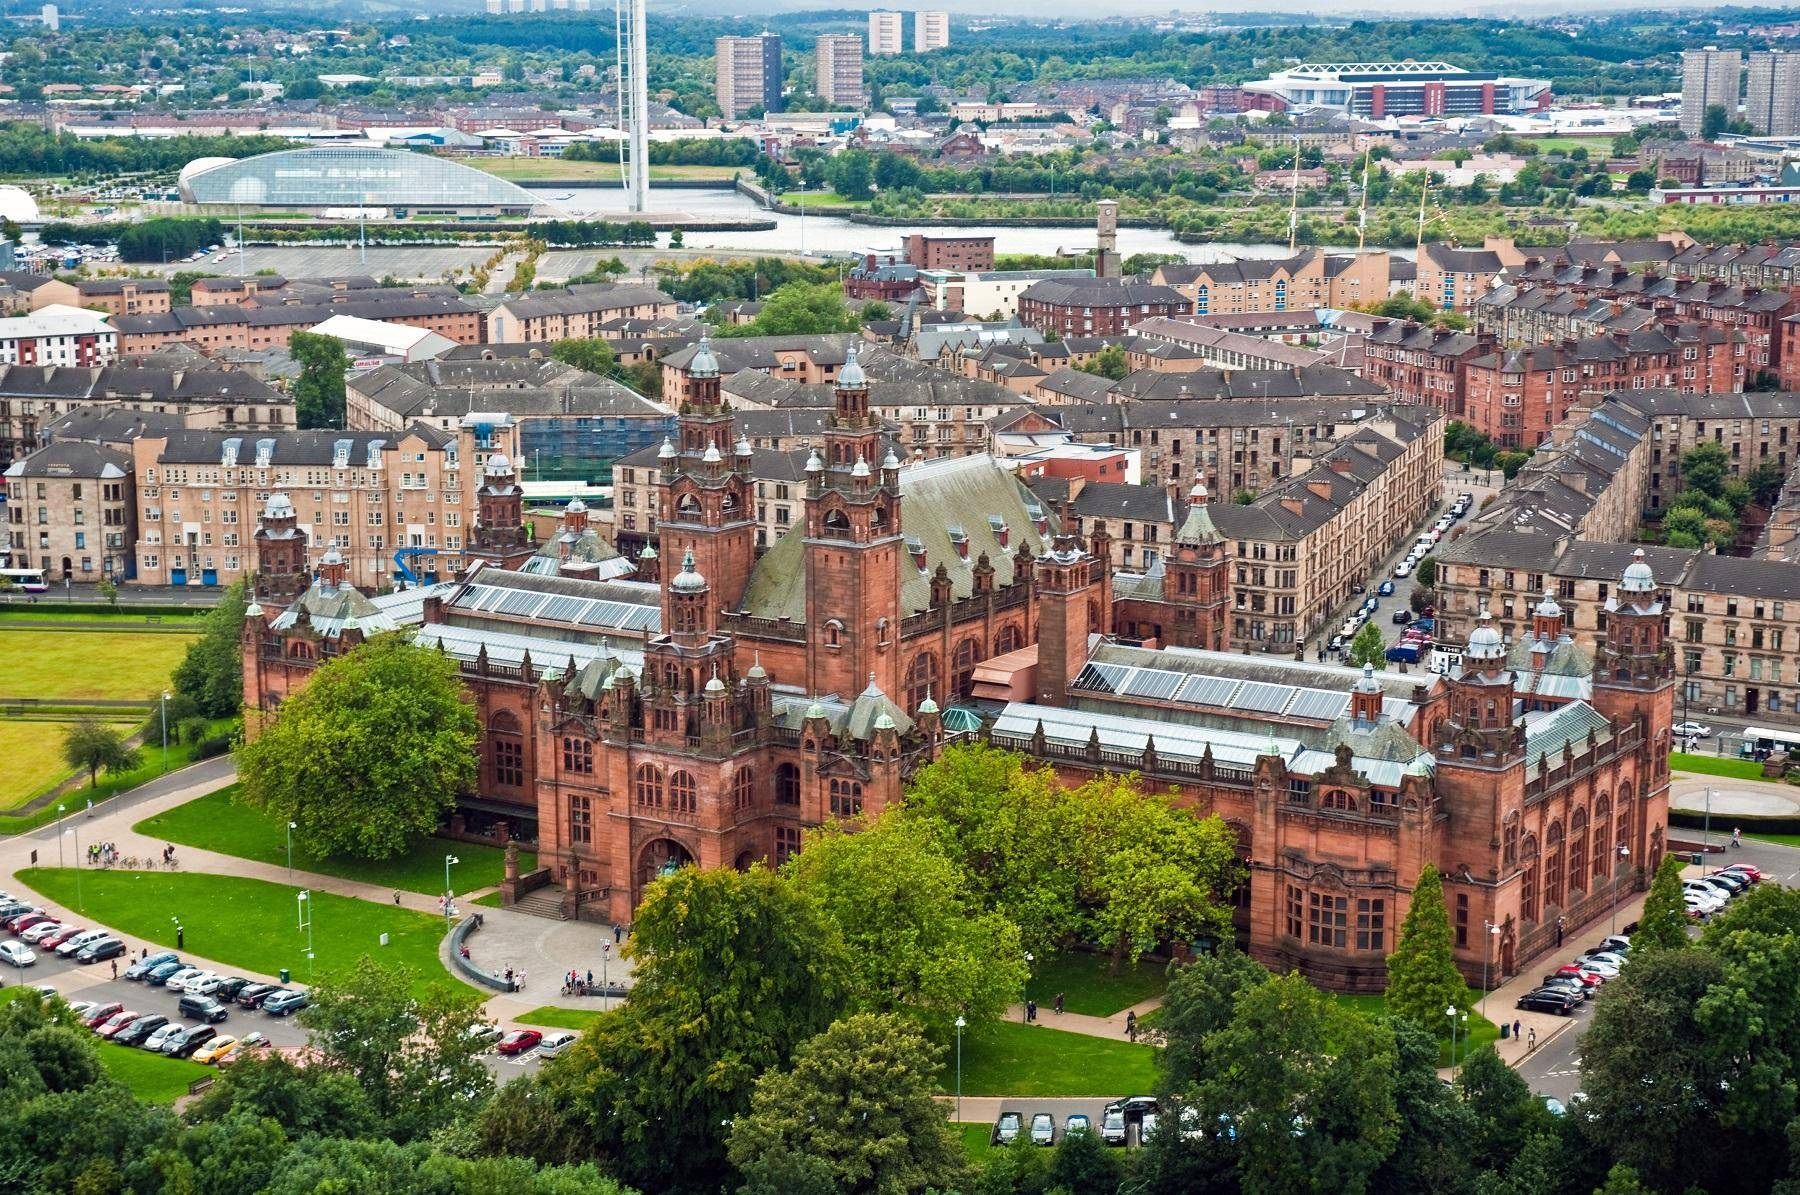 Kelvingrove_Art_Gallery_and_Museum_from_the_Glasgow_University_tower,_11_Sept._2010_-_Flickr_-_PhillipC